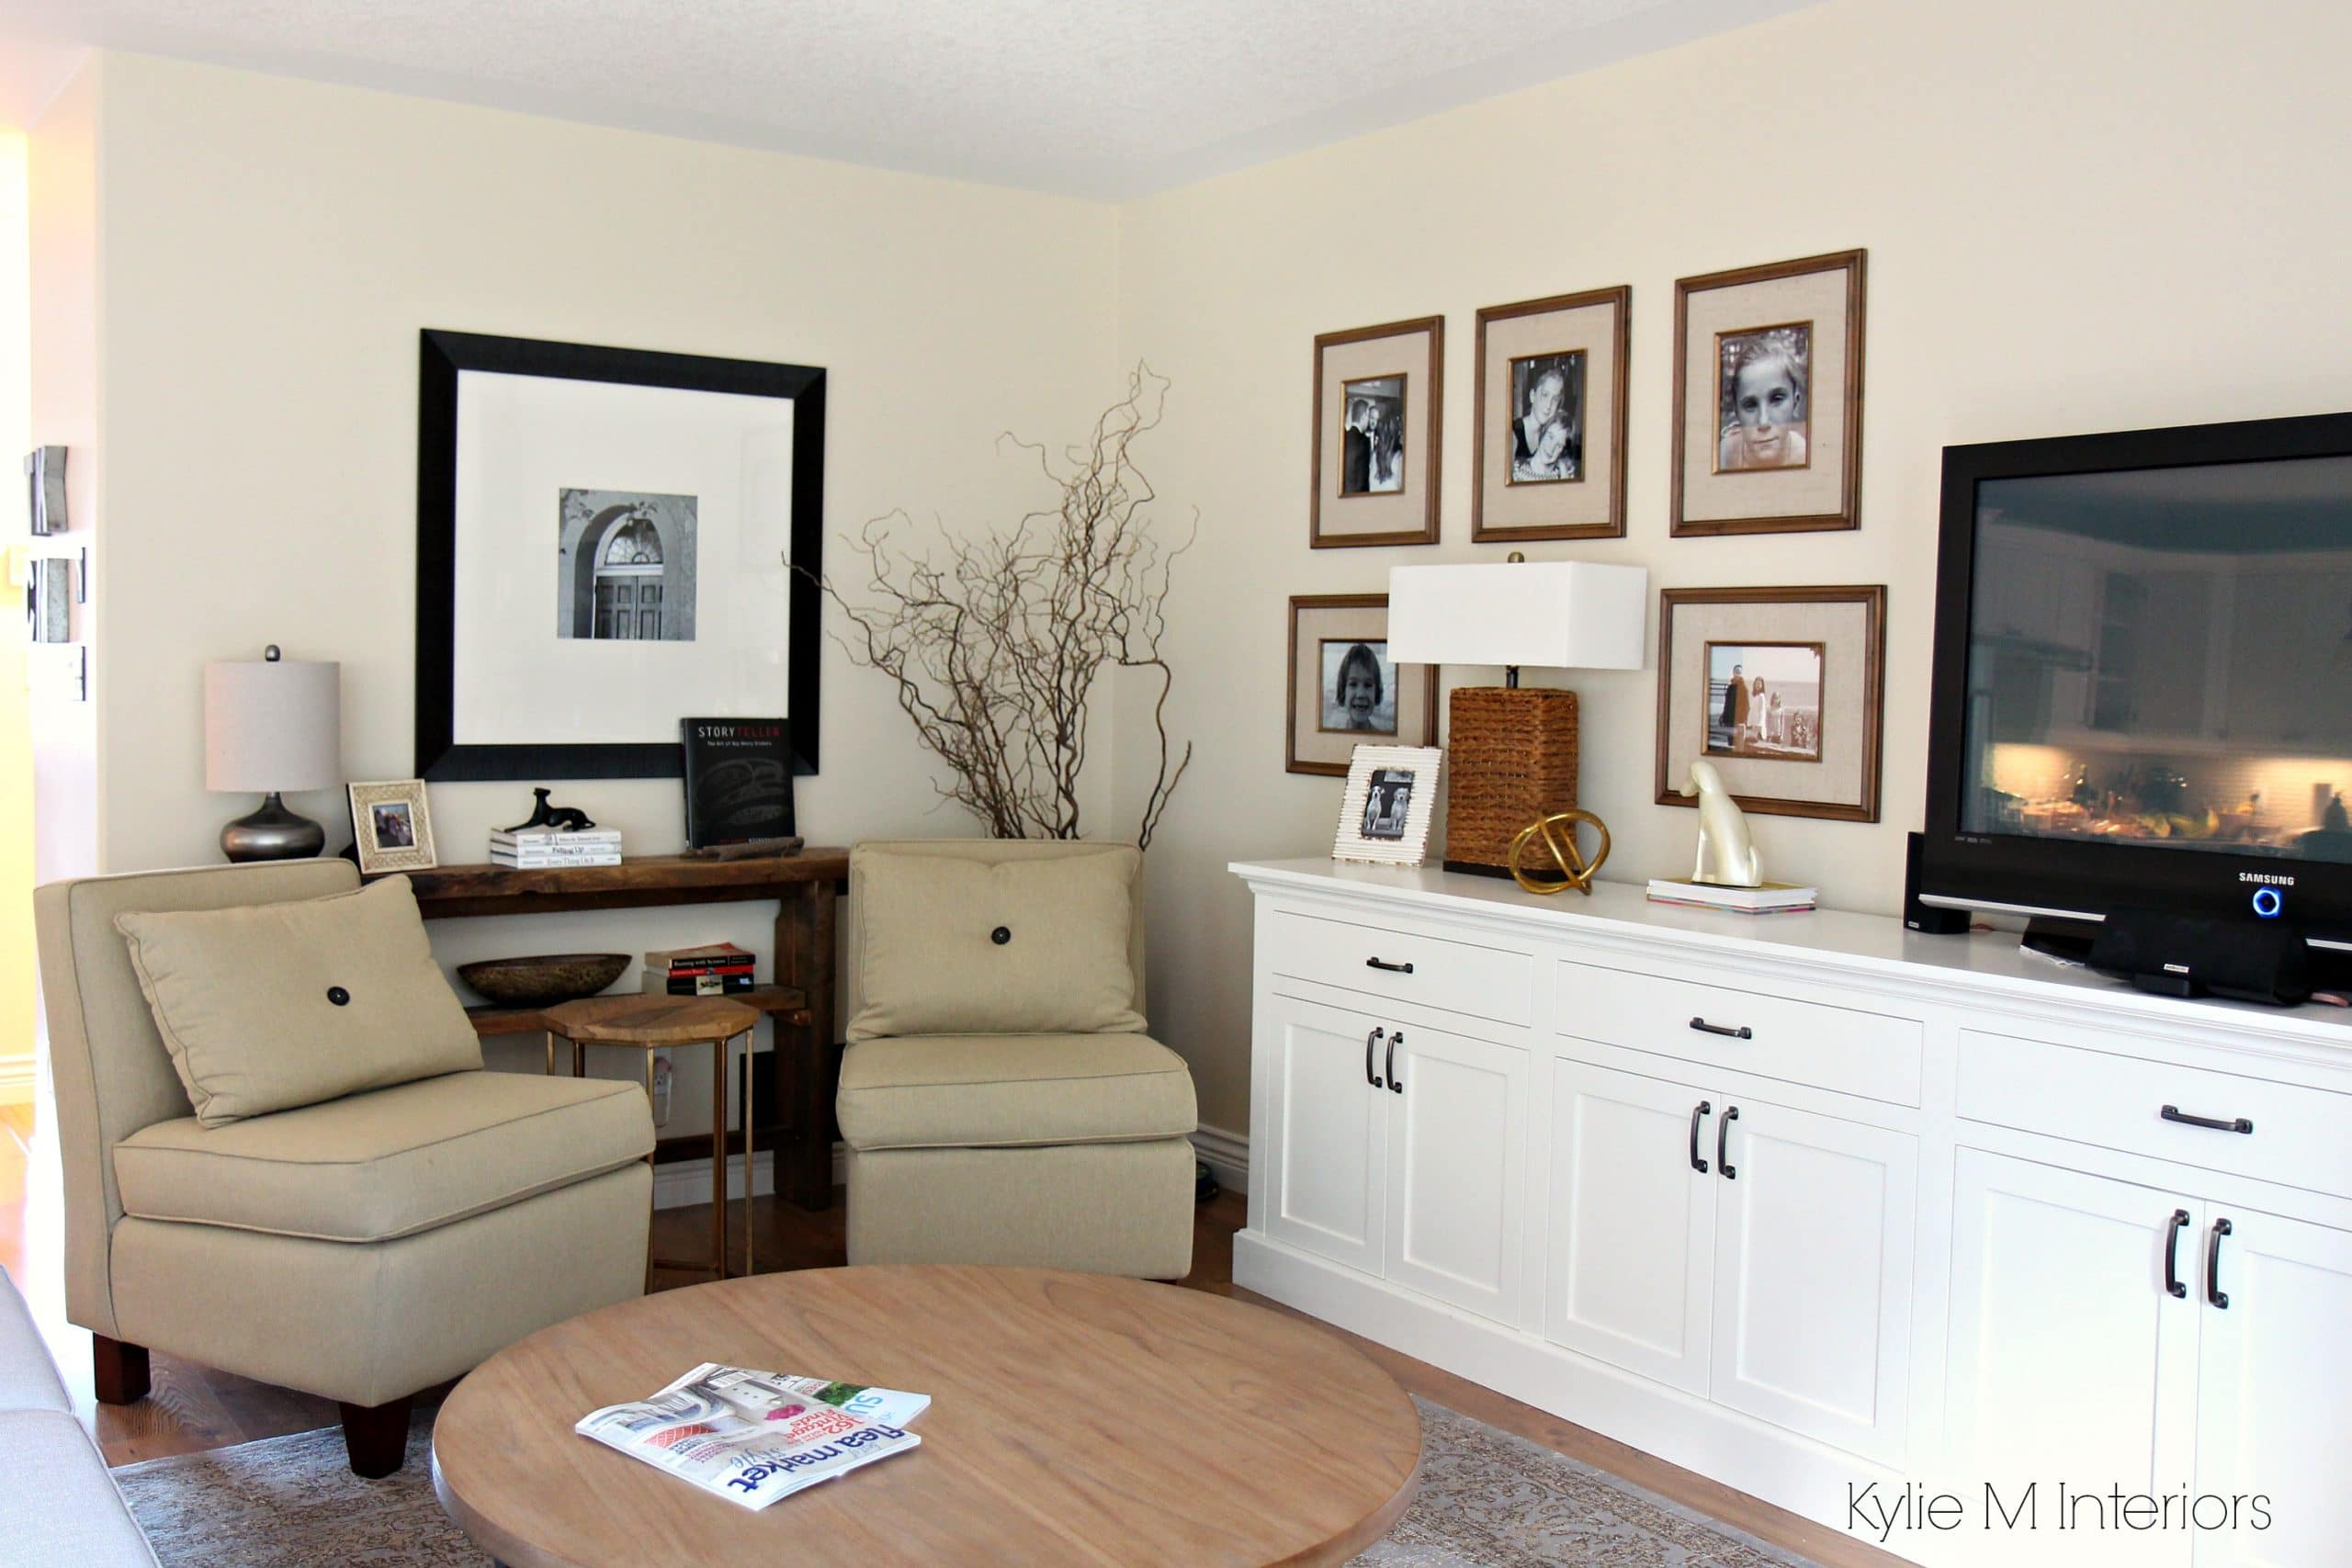 Hanging Art Above Tv Living Room Layout With 2 Chairs Family Photo Gallery